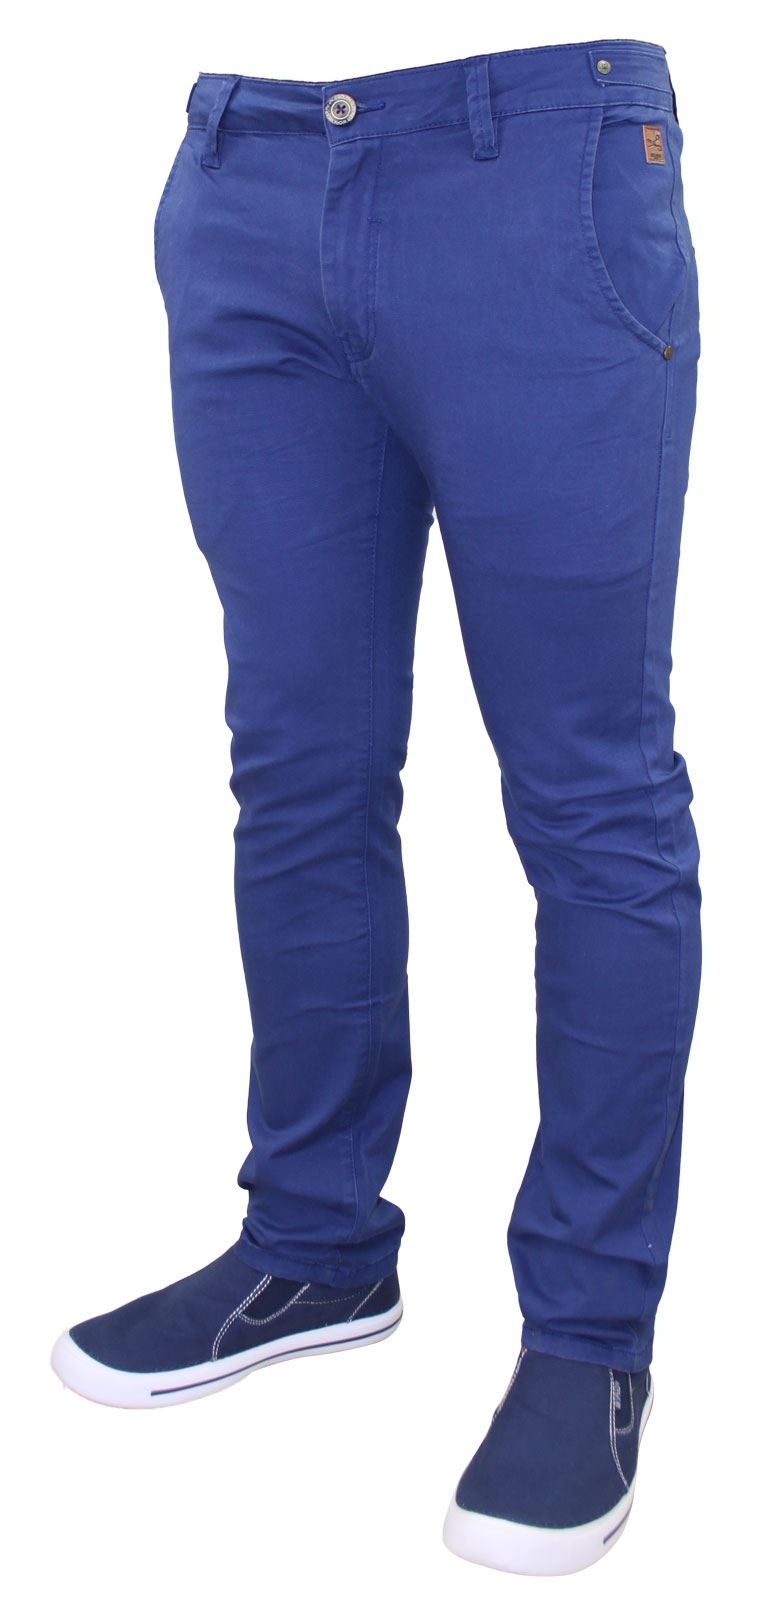 Men-Chinos-Trousers-Regular-Fit-Stretch-Cotton-Jeans-Pants-All-Waist-Sizes thumbnail 4